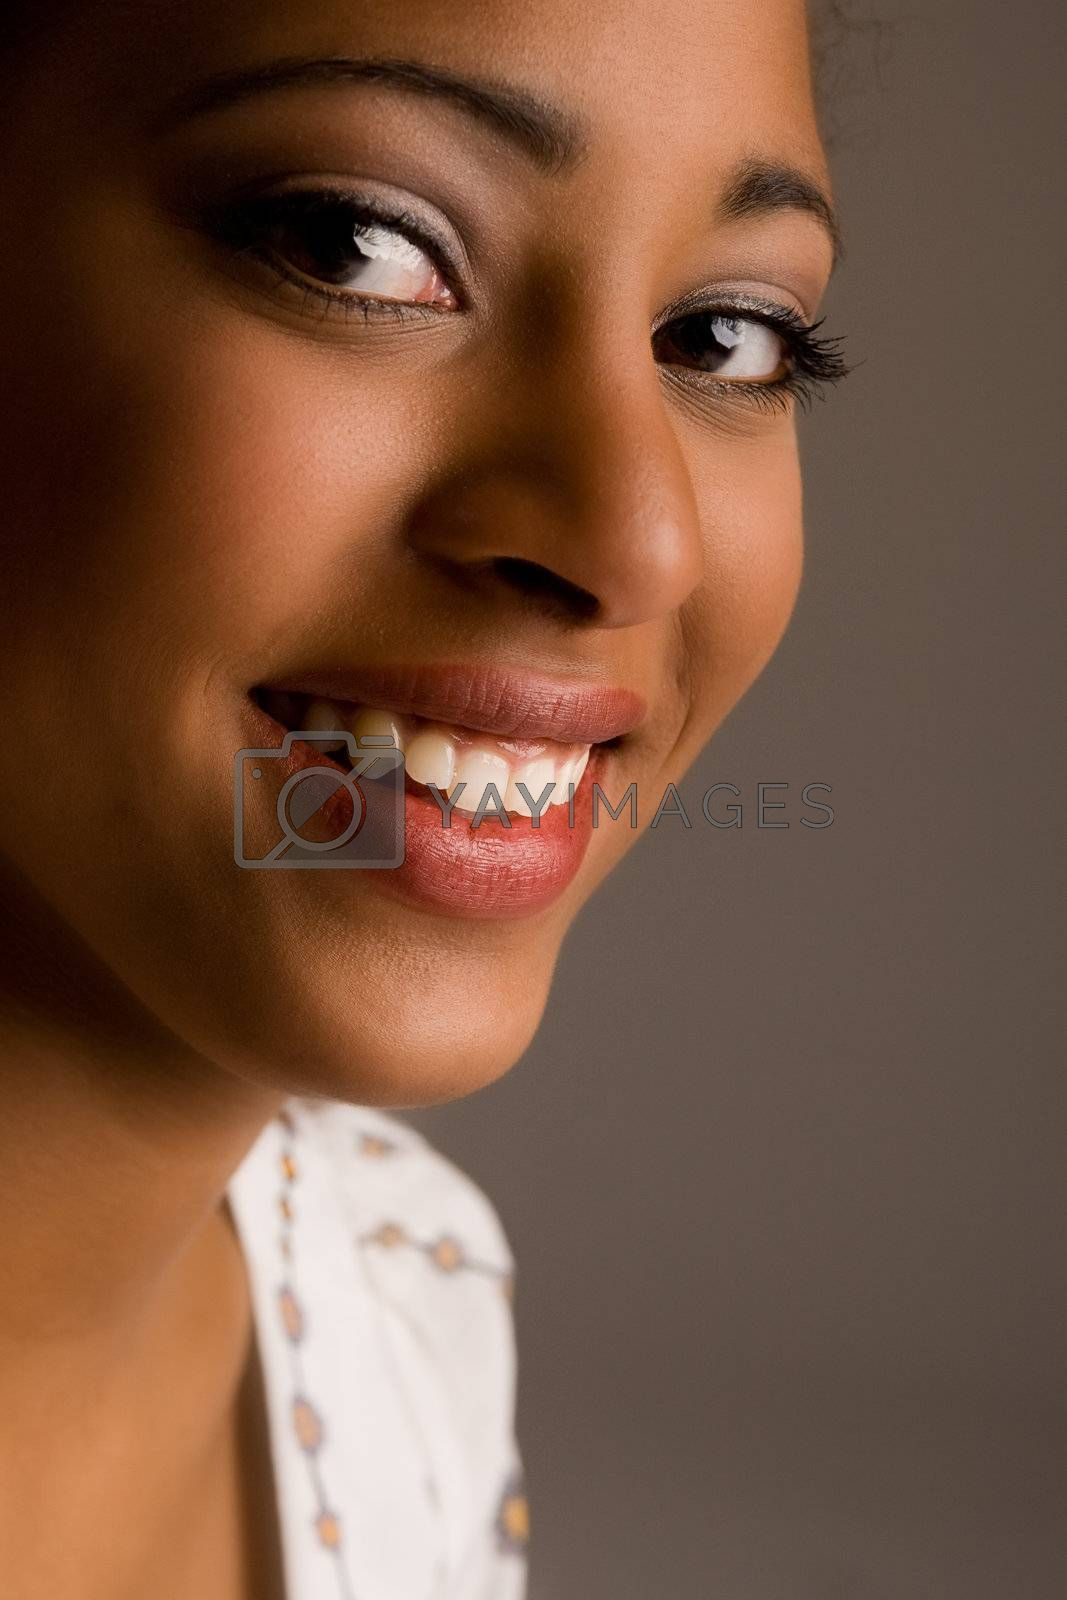 African girl in the studio with a smiling face